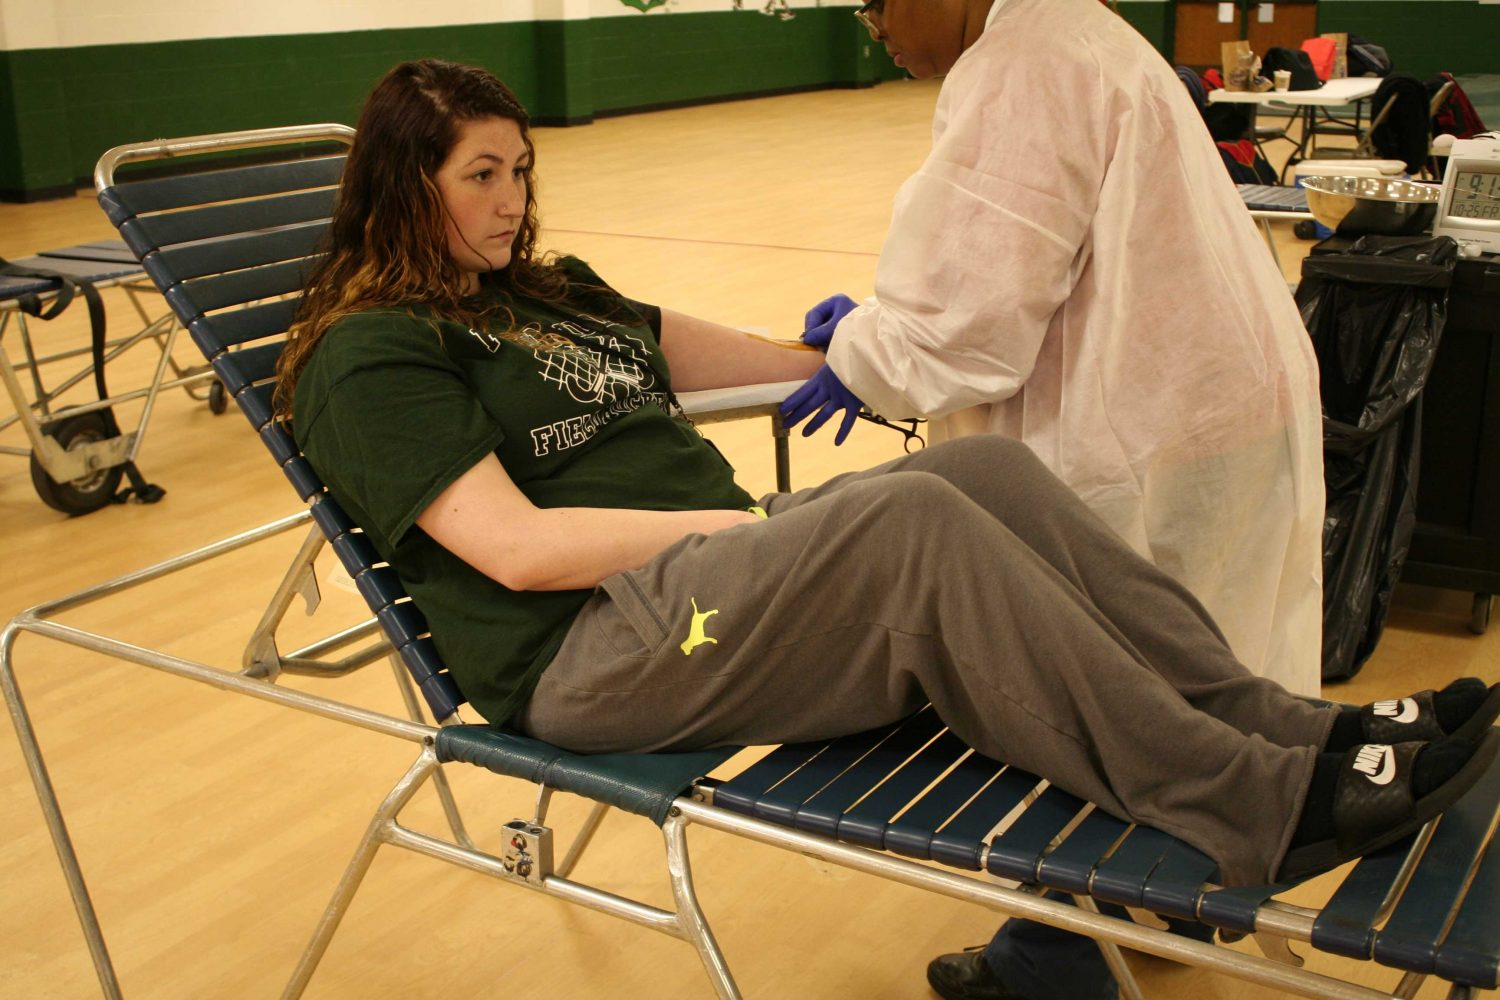 Pattonville%2C+NHS+donates+blood+to+the+Red+Cross